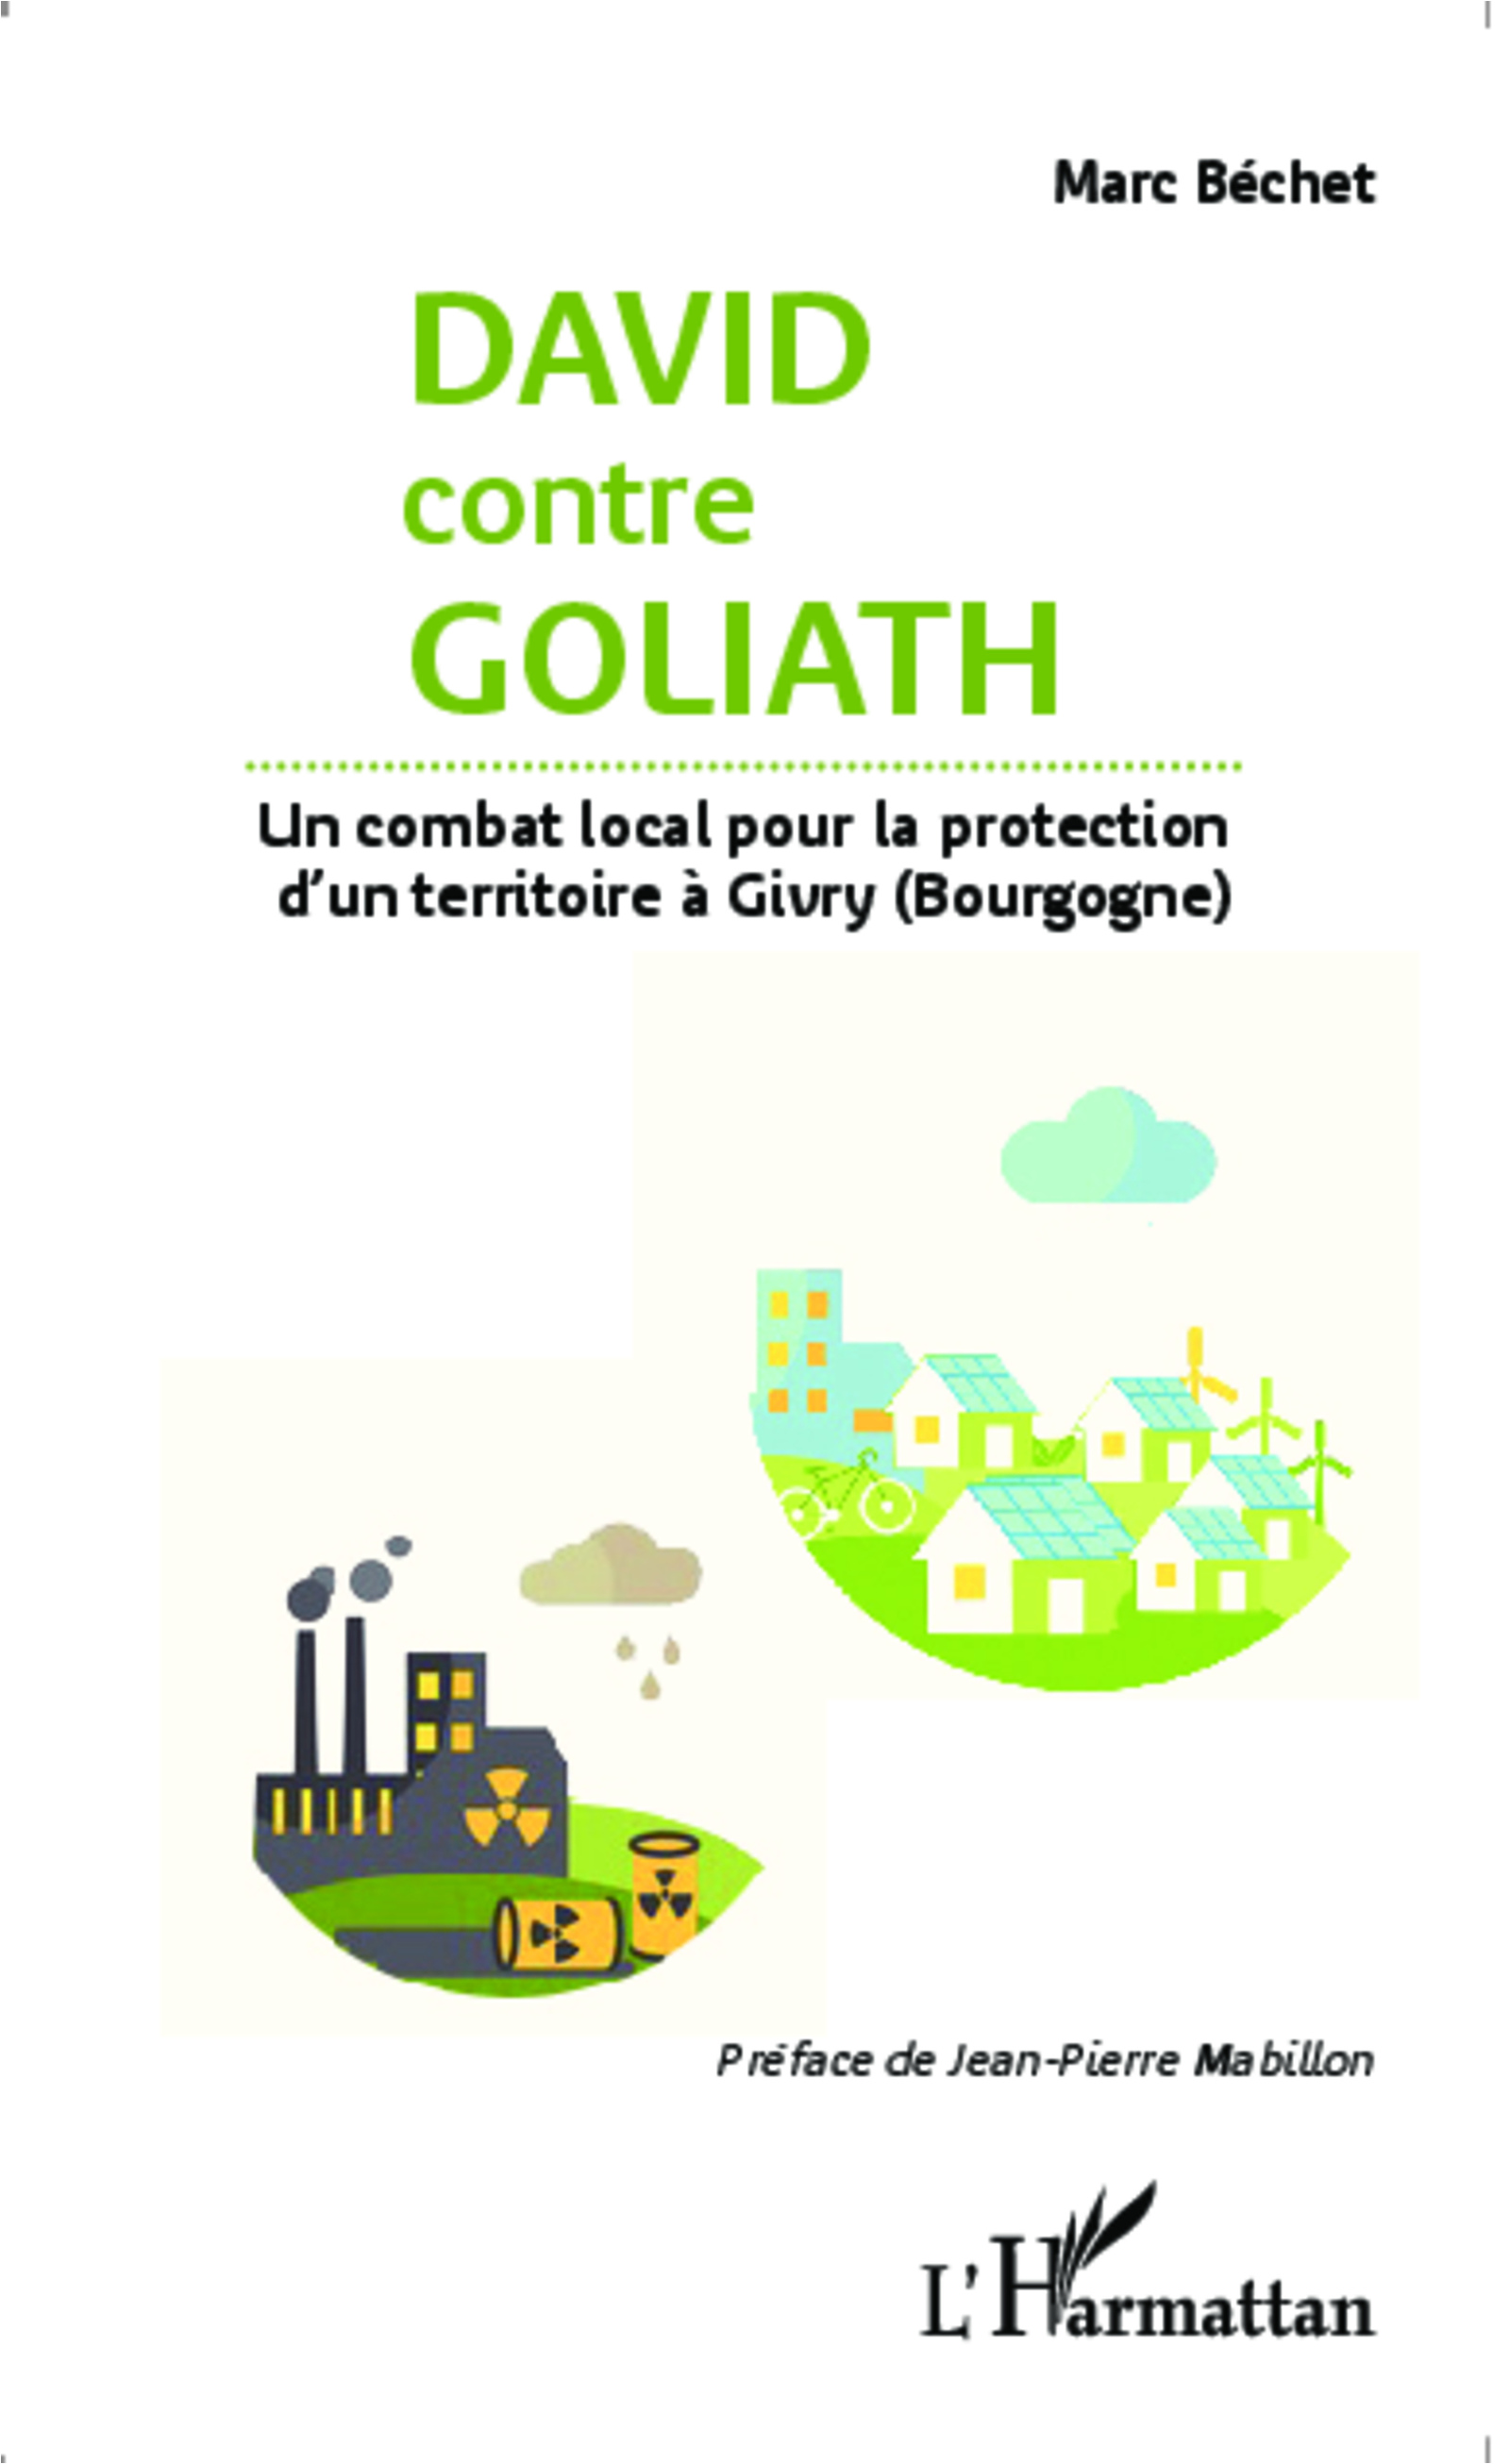 David contre Goliath. Un combat local pour la protection d'un territoire à Givry (Bourgogne)